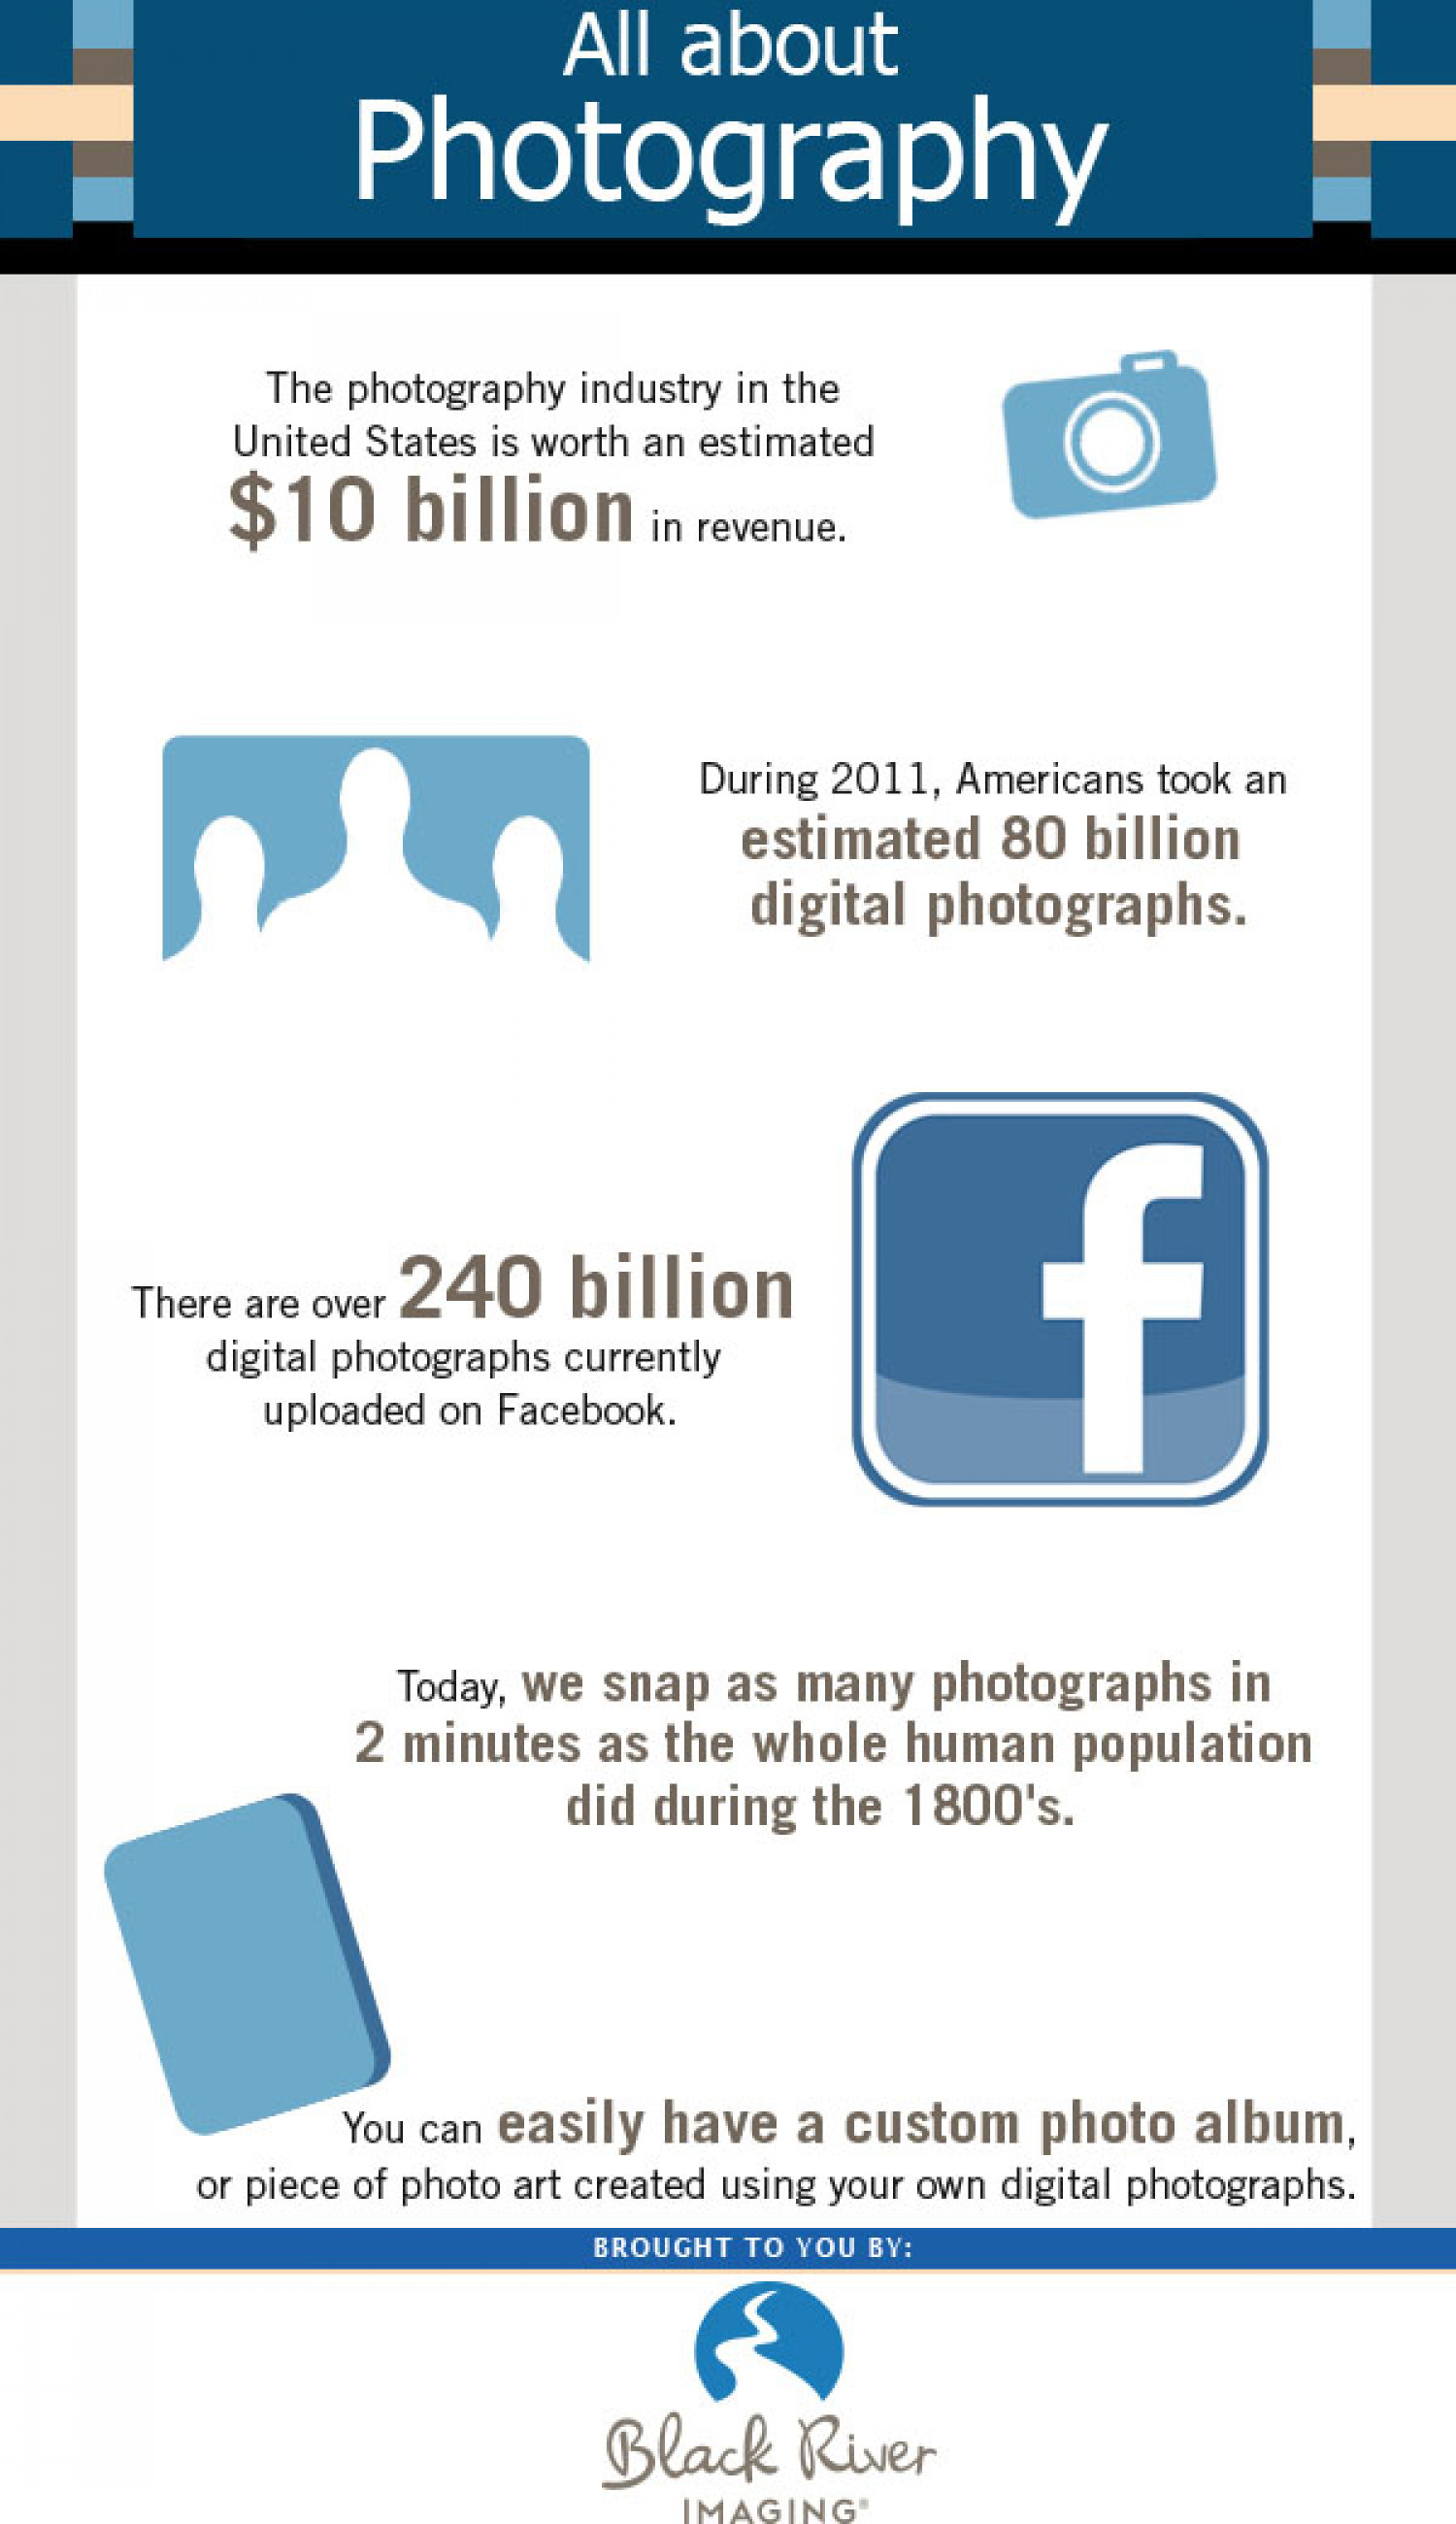 All About Photography Infographic